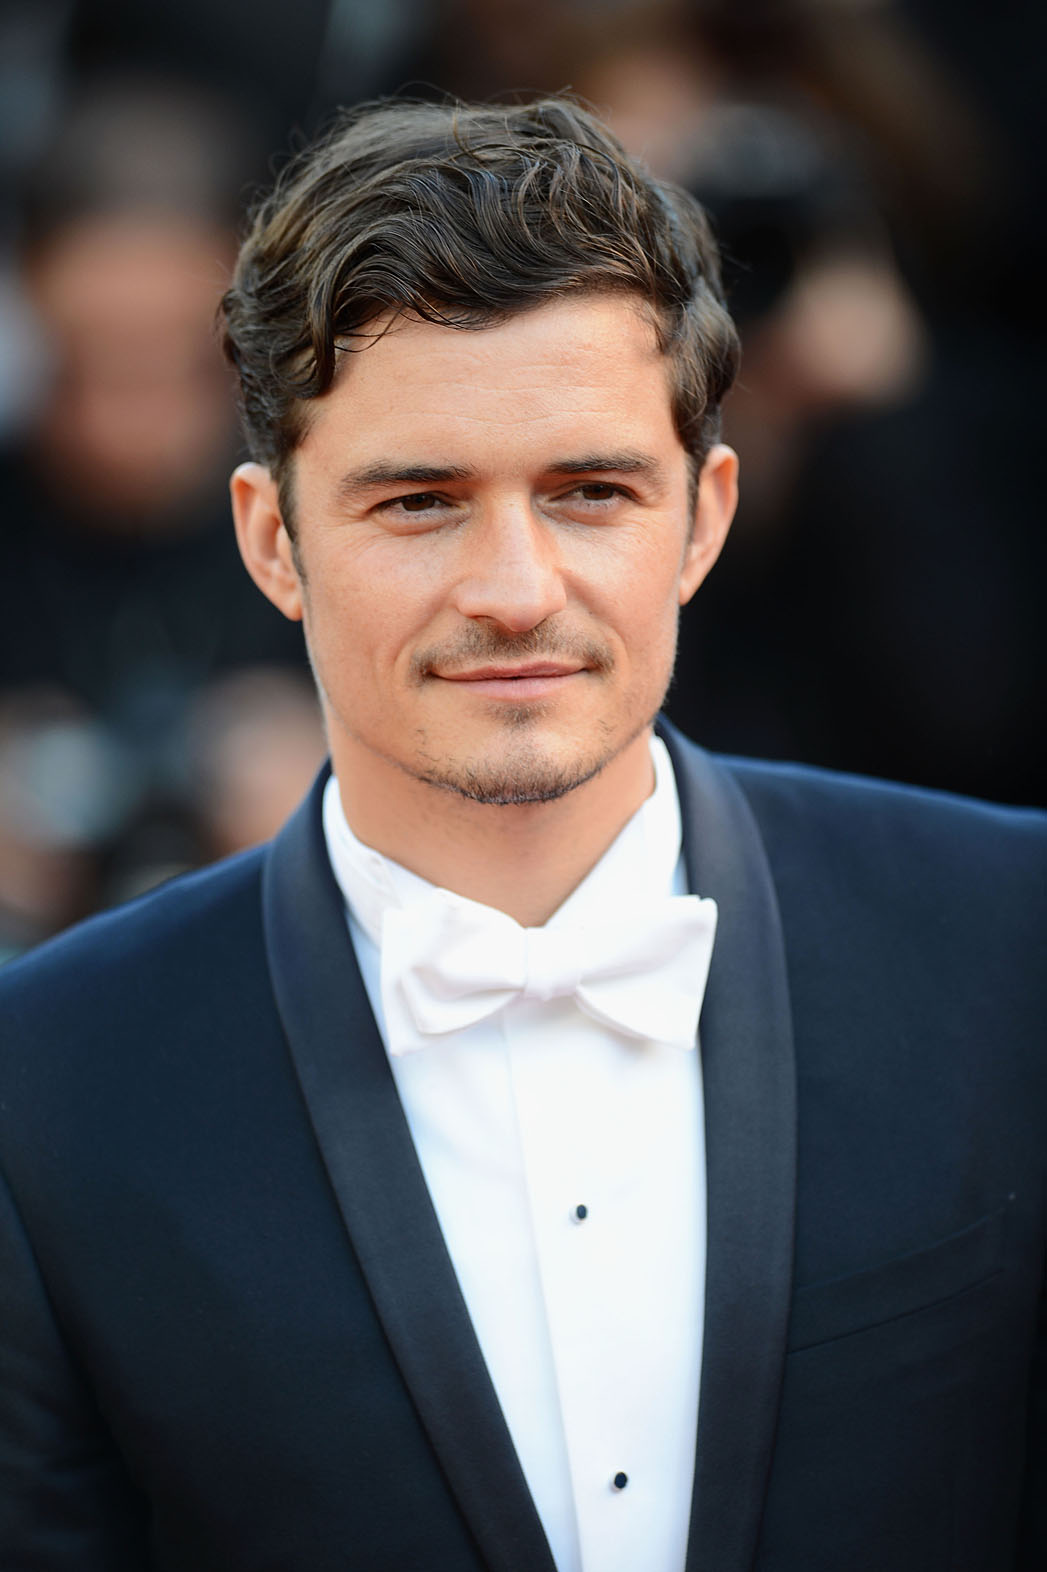 an analysis of the acting of orlando bloom an english actor Read all the movies movie news get all the latest updates on your favorite movies - from new releases to timeless classics, get the scoop on moviefone.